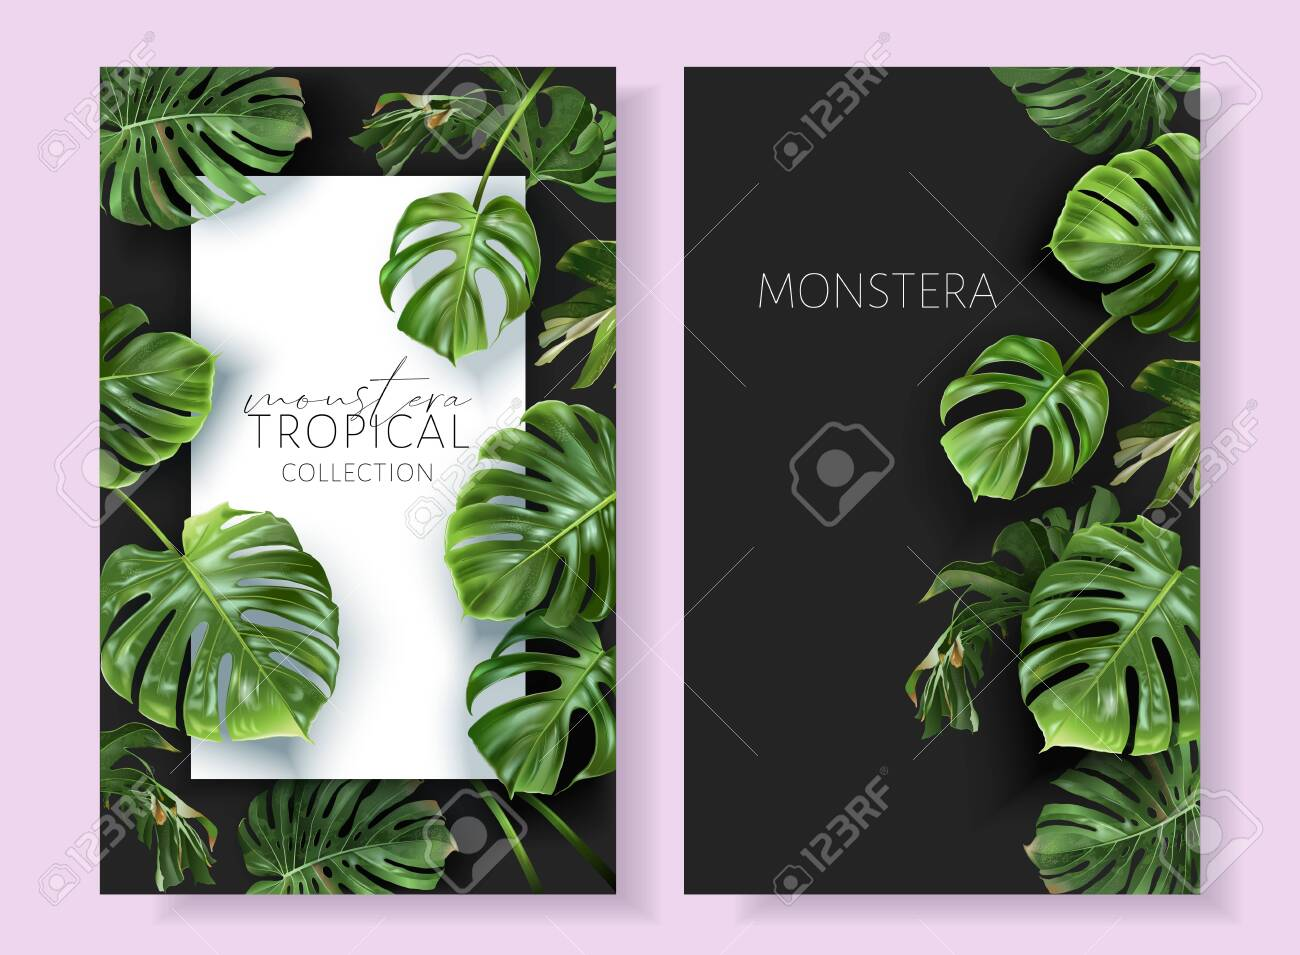 Vector monstera frames with green tropical leaves - 154013020